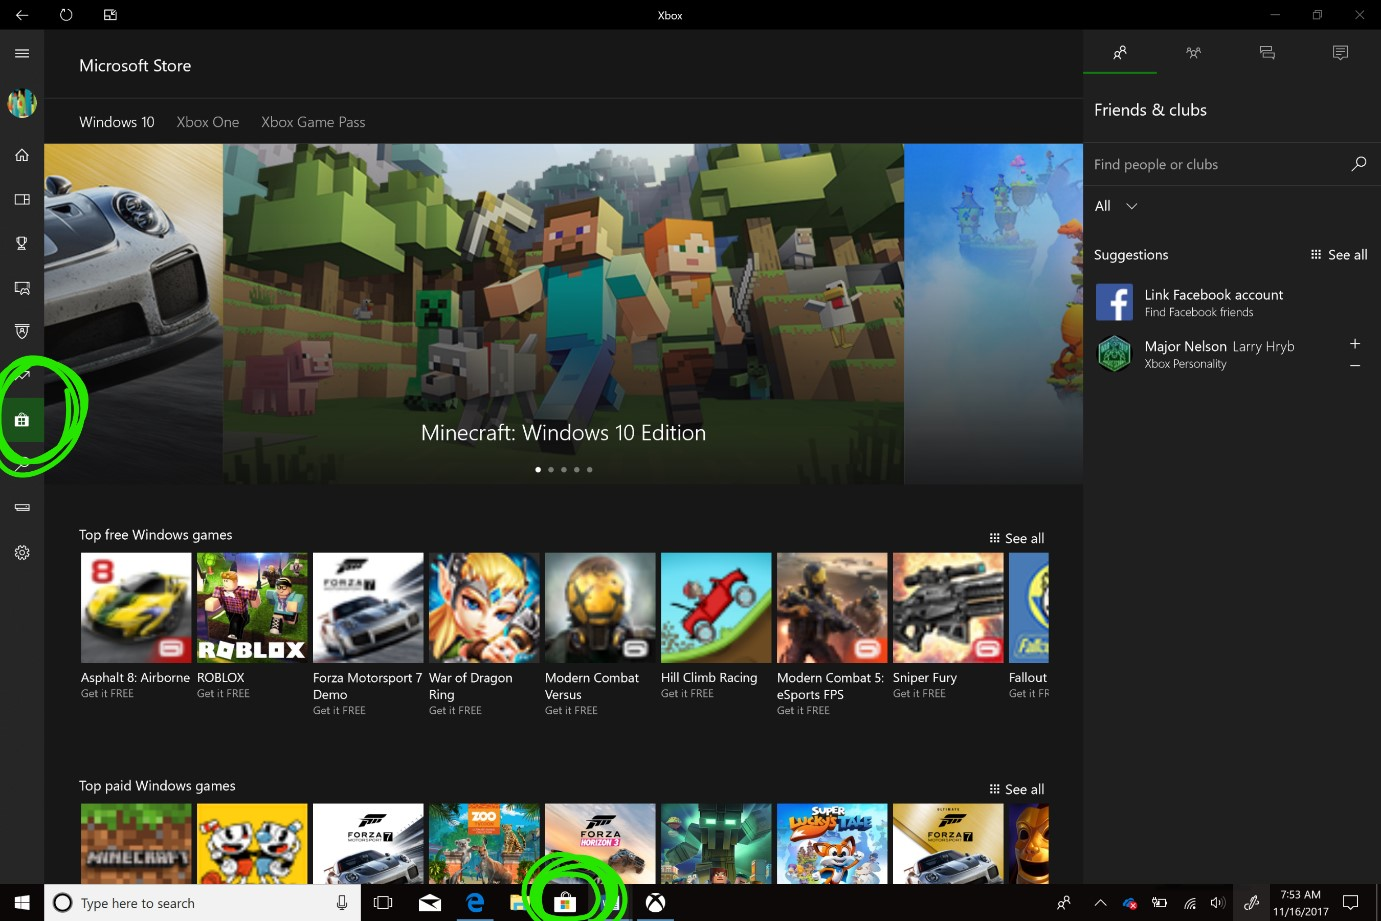 Microsoft Store within Xbox app